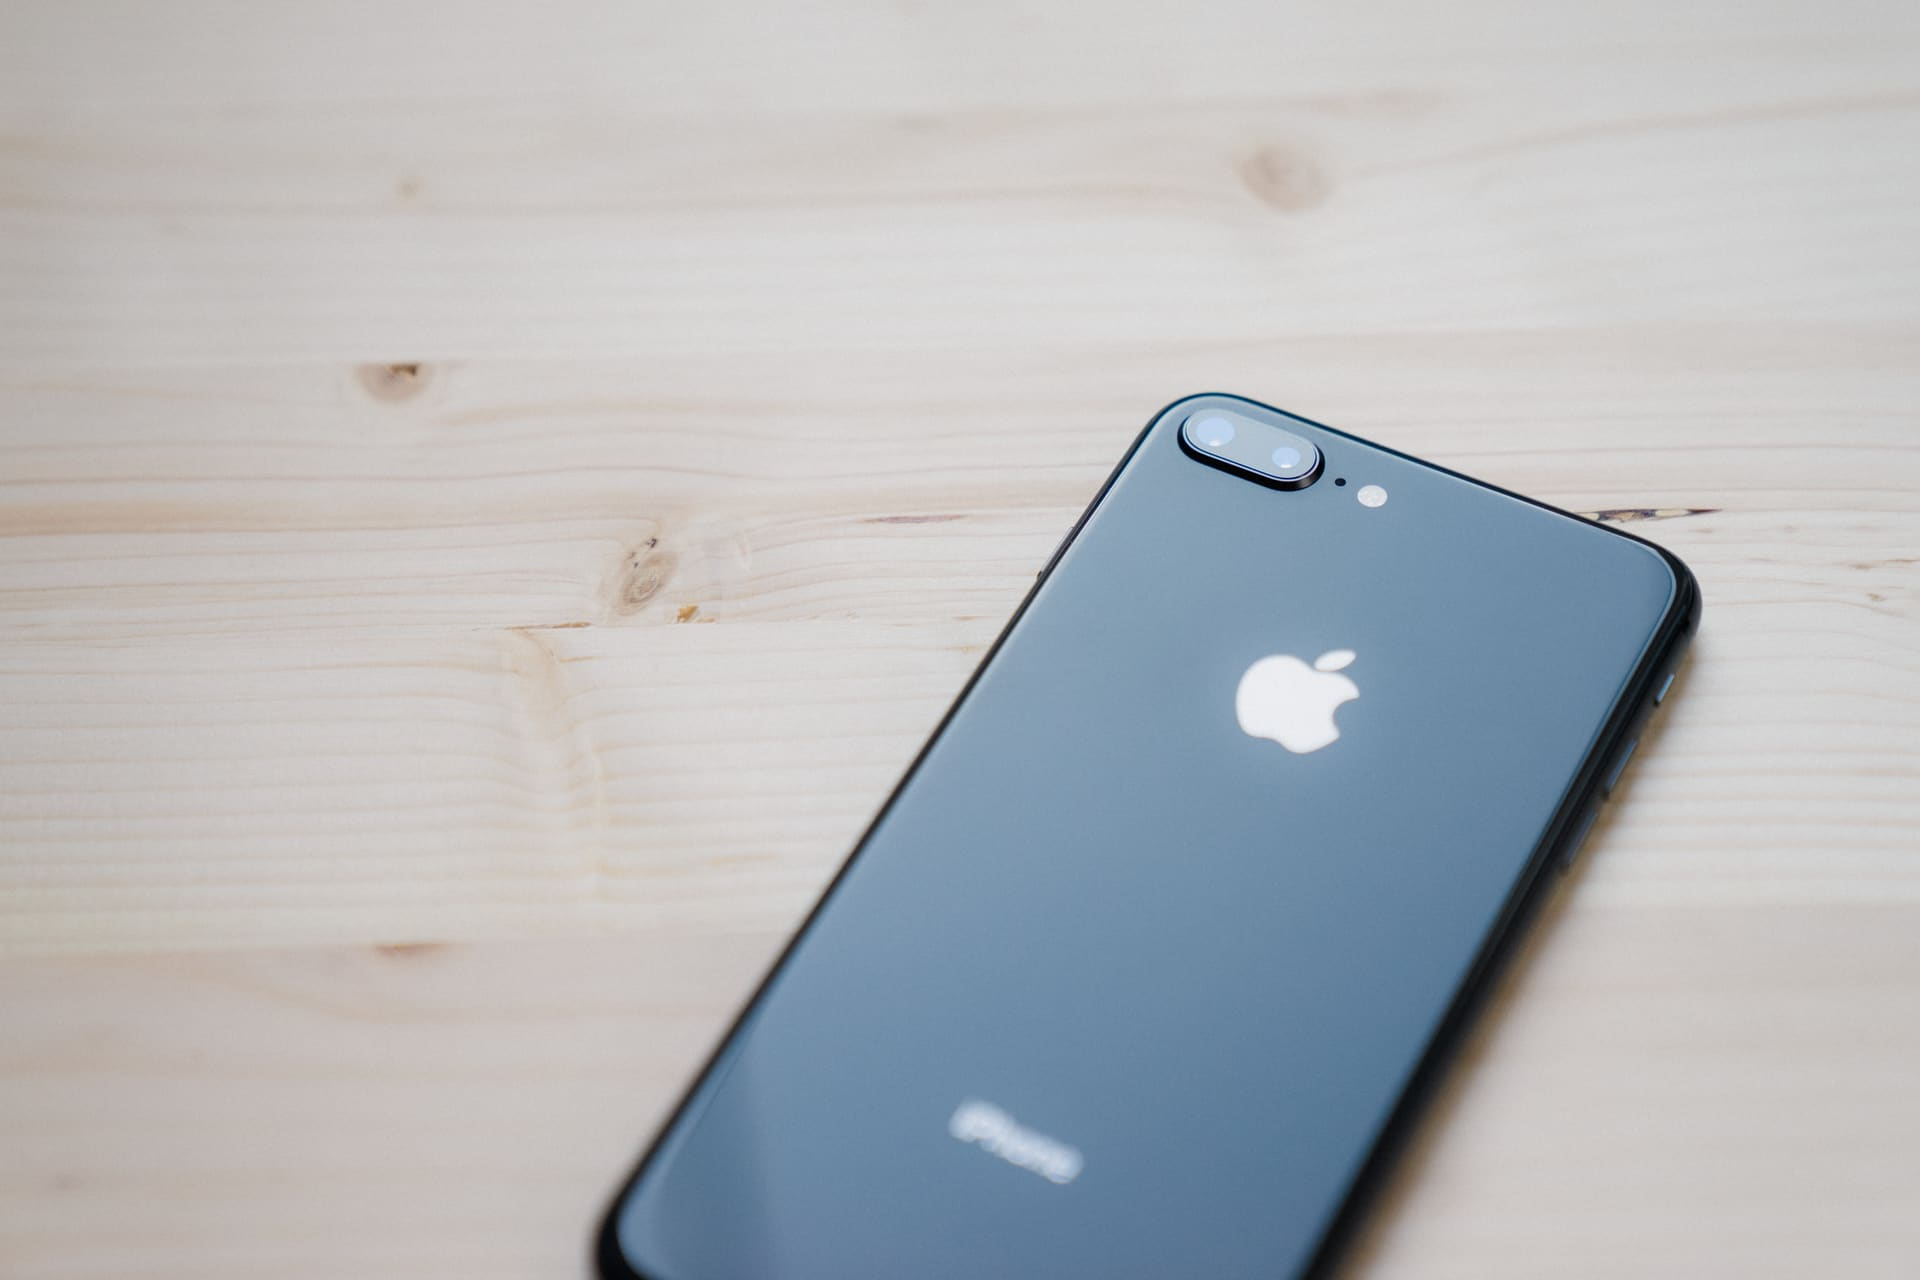 Iphone 8 Plus Uk Review Should You Wait For The X Rha Ma750i Xs Telephoto Lens Instance Sports Optical Image Stabilization And An F 24 Aperture While Sticks With